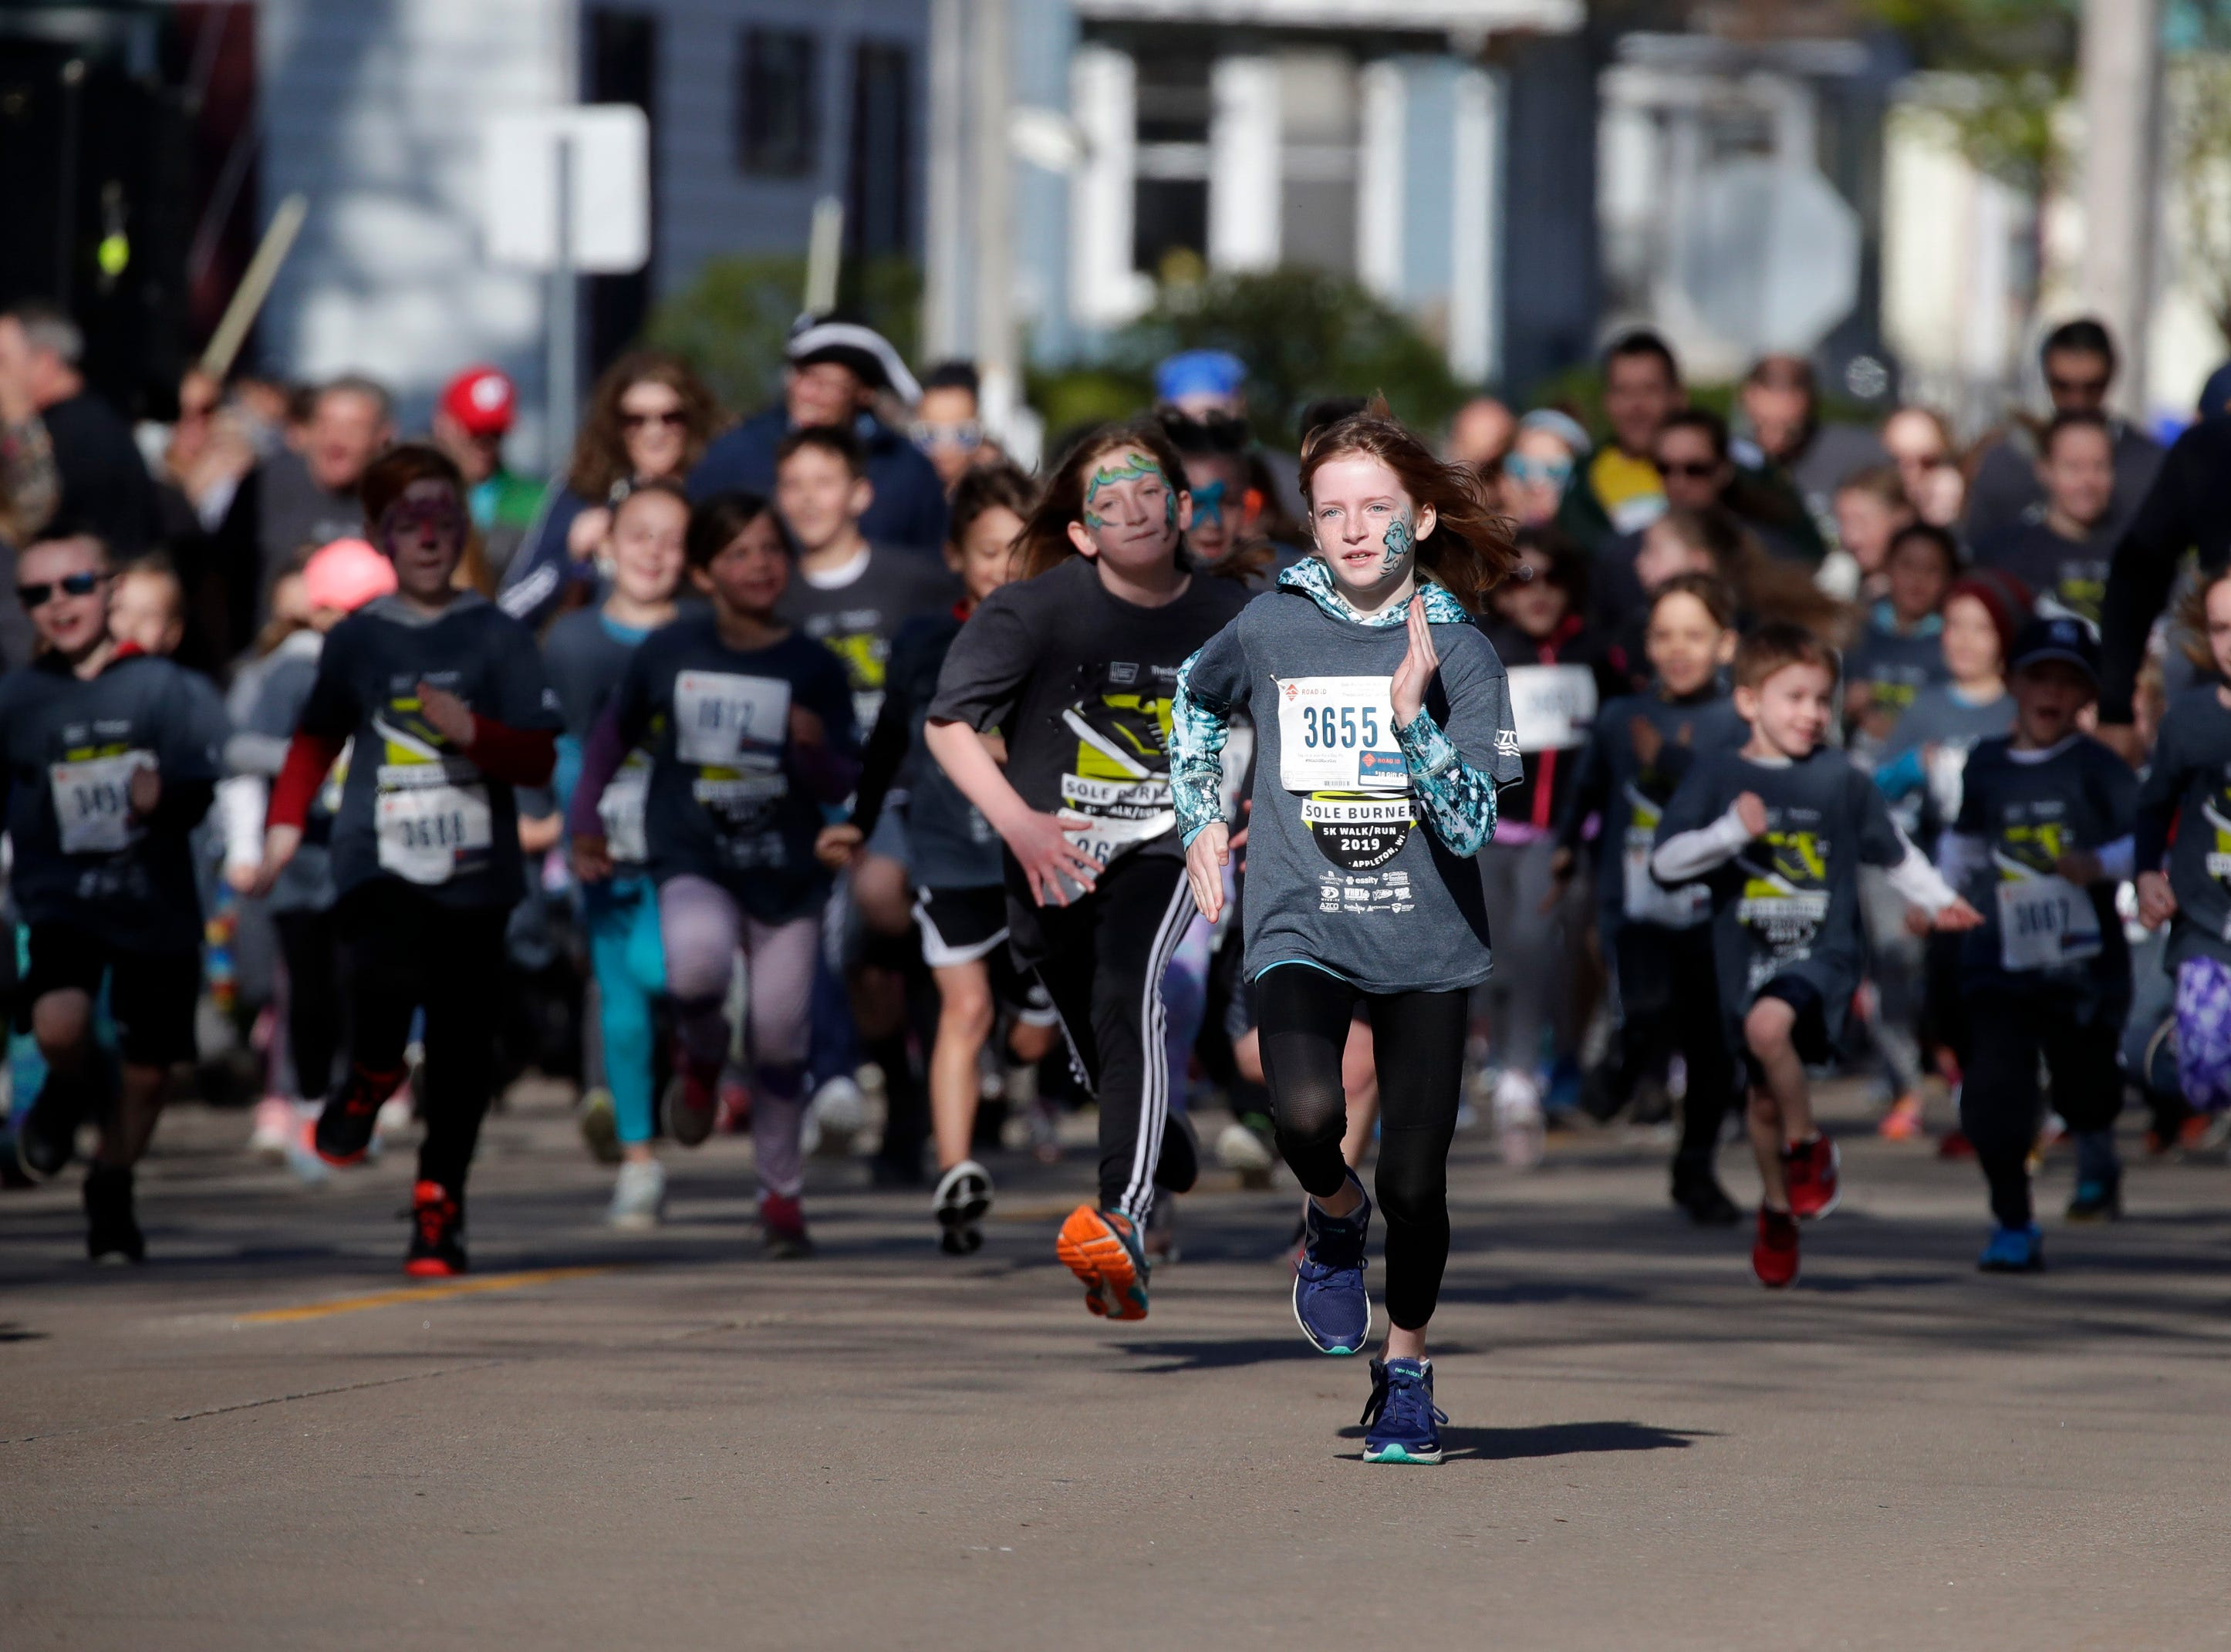 Racers in the children's fun run take off from the starting line during the Sole Burner 5K Walk-Run Saturday, May 11, 2019, in Appleton, Wis. Danny Damiani/USA TODAY NETWORK-Wisconsin